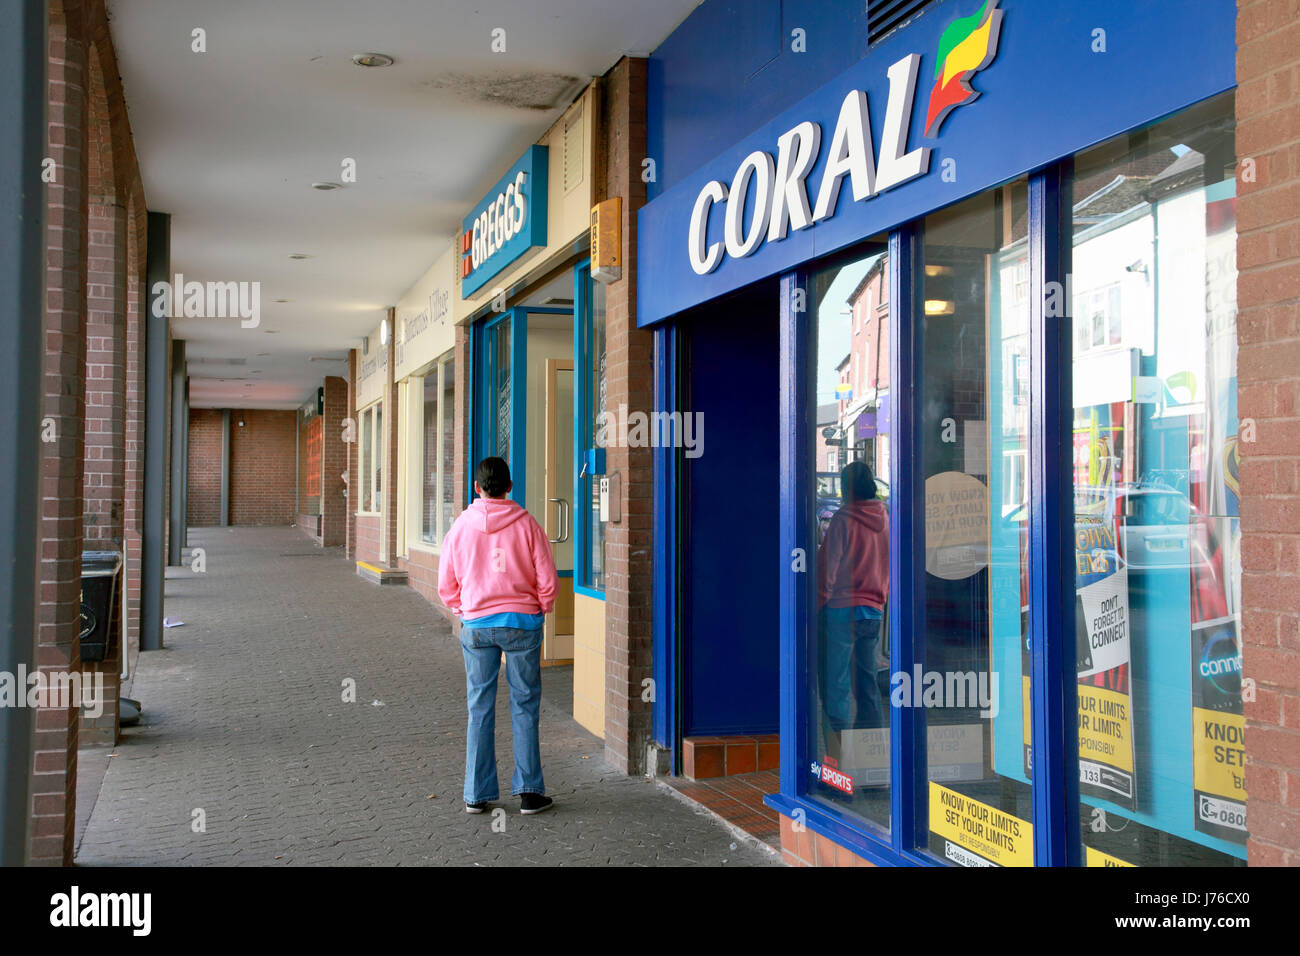 Coral Betting shop and Greggs Bakery next to each other on the high street in Market Drayton, Shropshire - Stock Image